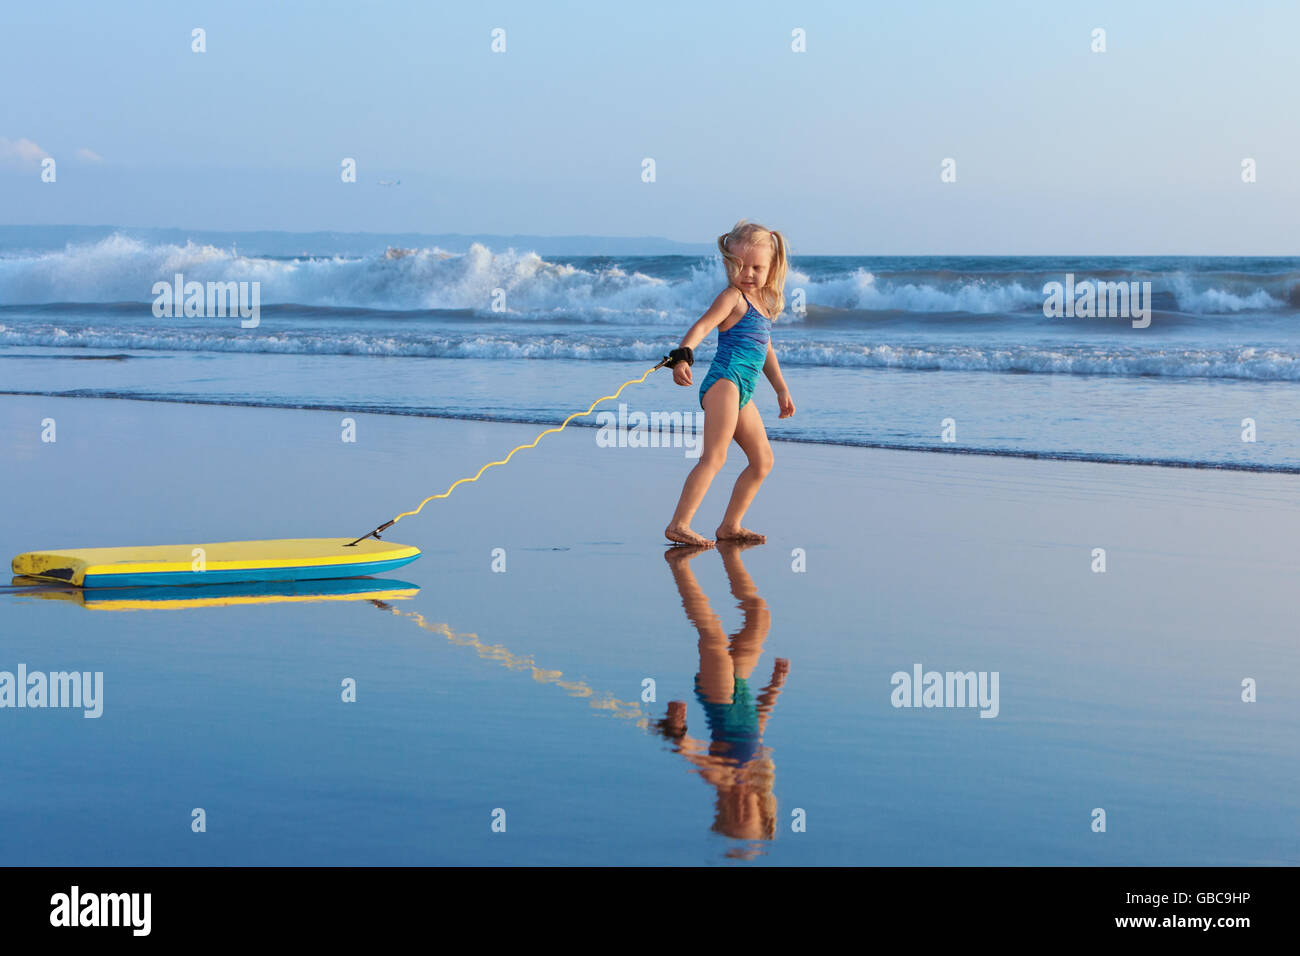 Little baby girl - young surfer with bodyboard has fun on sea beach. Family lifestyle, people water sport activity, - Stock Image